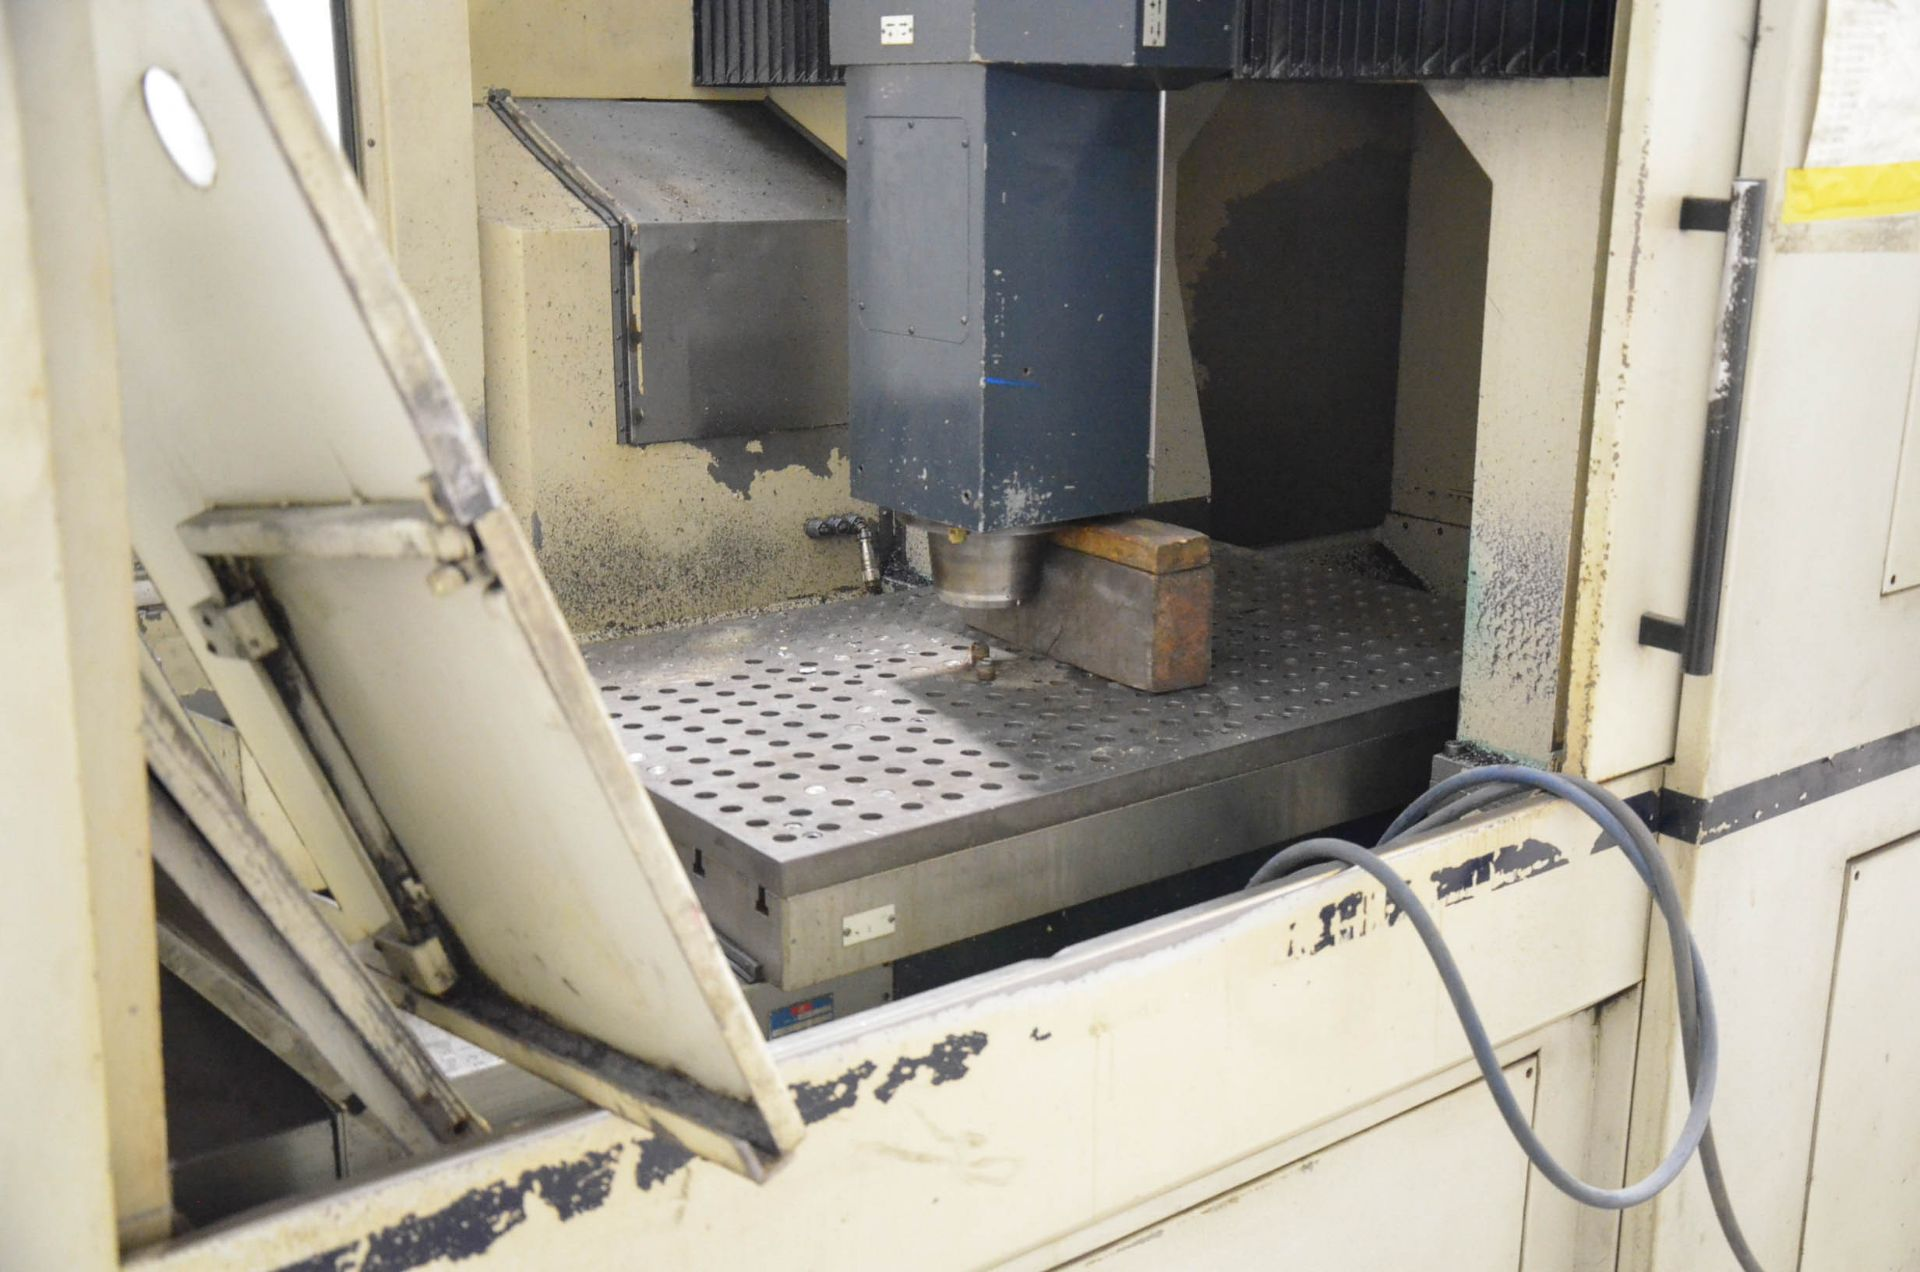 LOT/ SURPLUS MACHINERY AND EQUIPMENT CONSISTING OF PARPAS FAMU (1998) PHS-812 GANTRY-TYPE CNC - Image 4 of 6